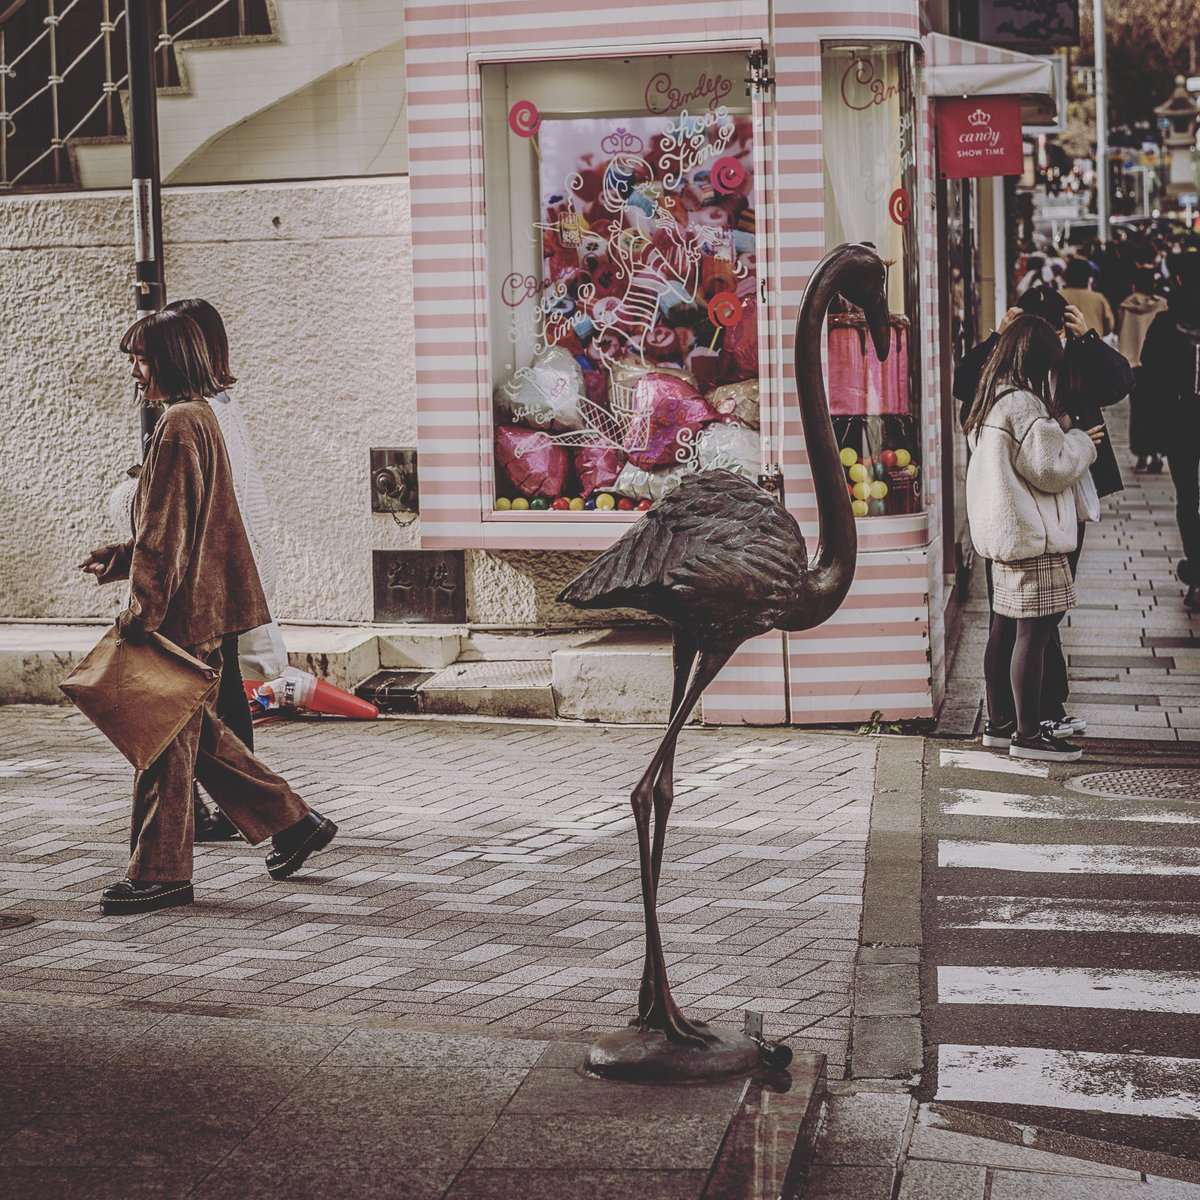 tokyo  - there was a flamingo  - #キリトリセカイ #カメラ女子 #thinkverylittle  #lucecurated  #spjstreets #ifyouleave #oftheafternoon #createexploretakeover #knowthismind  #東京カメラ部 #streetlevelphotography #n8zinepic.twitter.com/Z2FSGjezPl